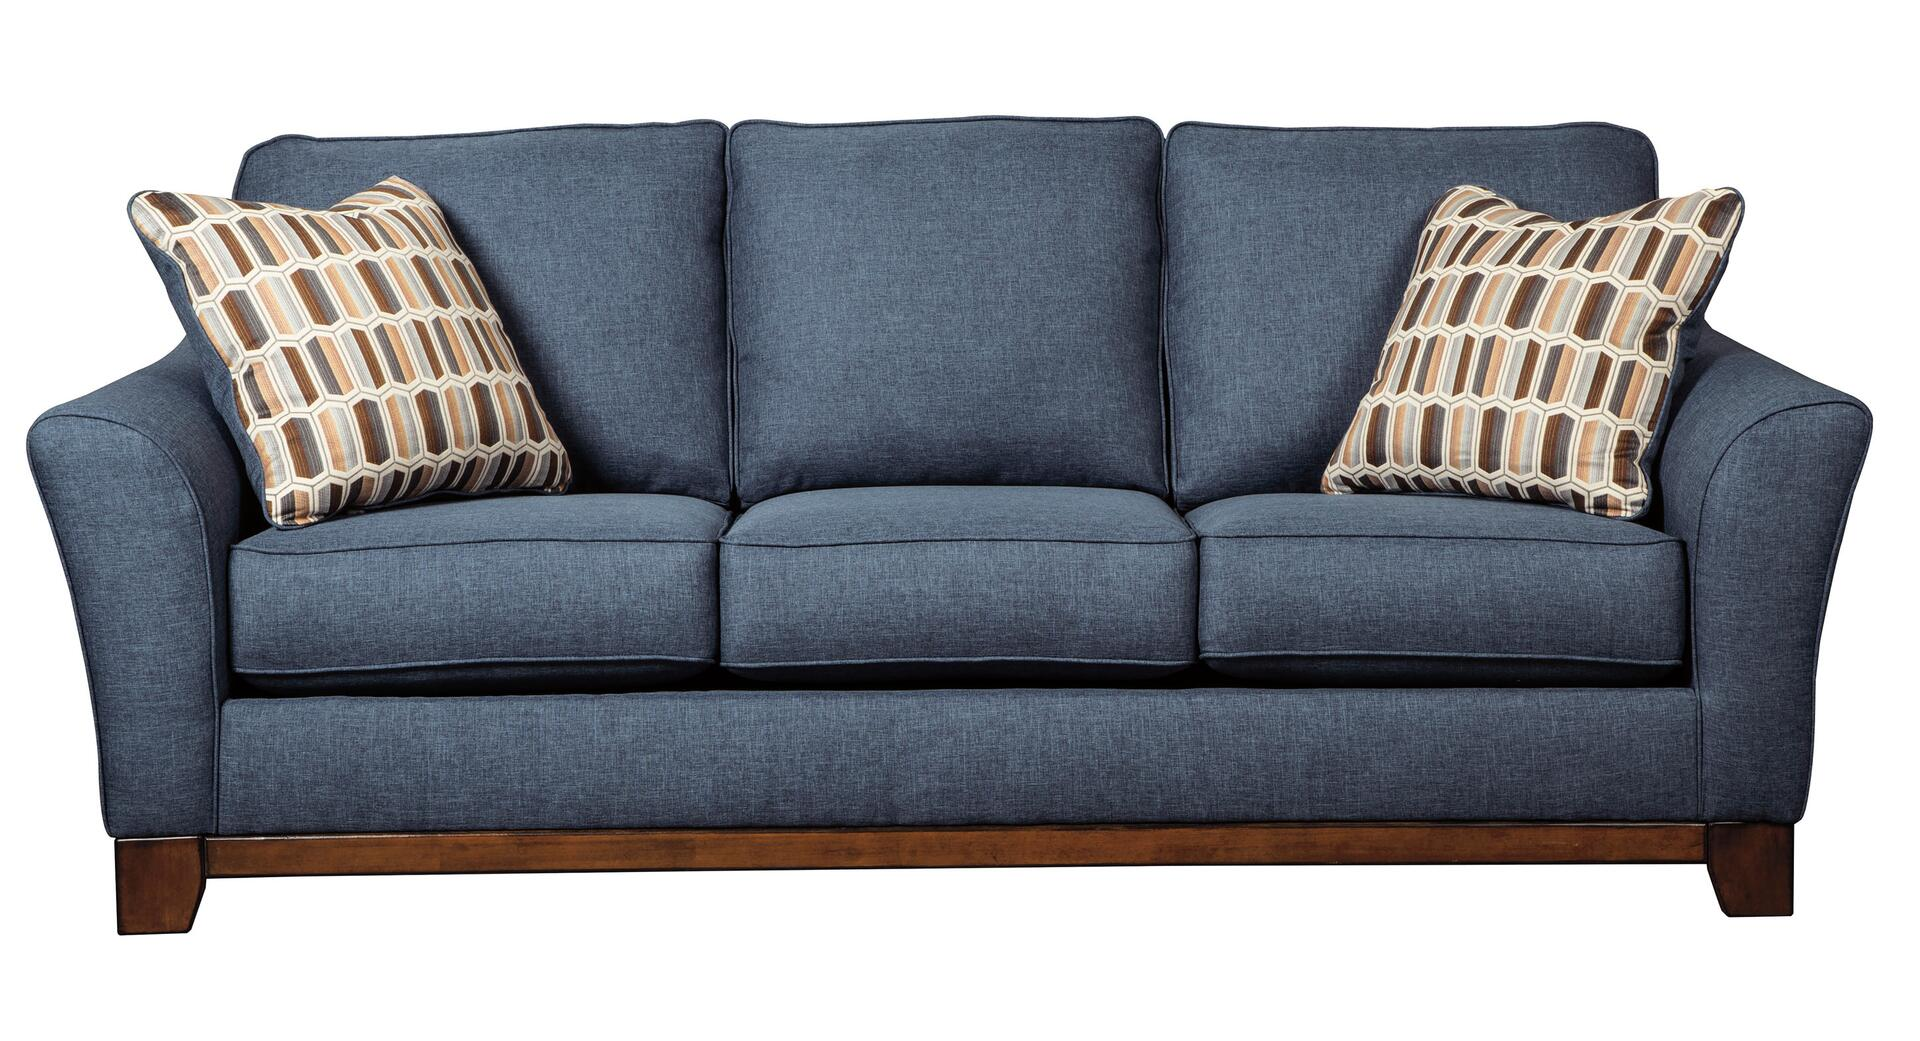 Benchcraft Janley Series Fabric Sofa